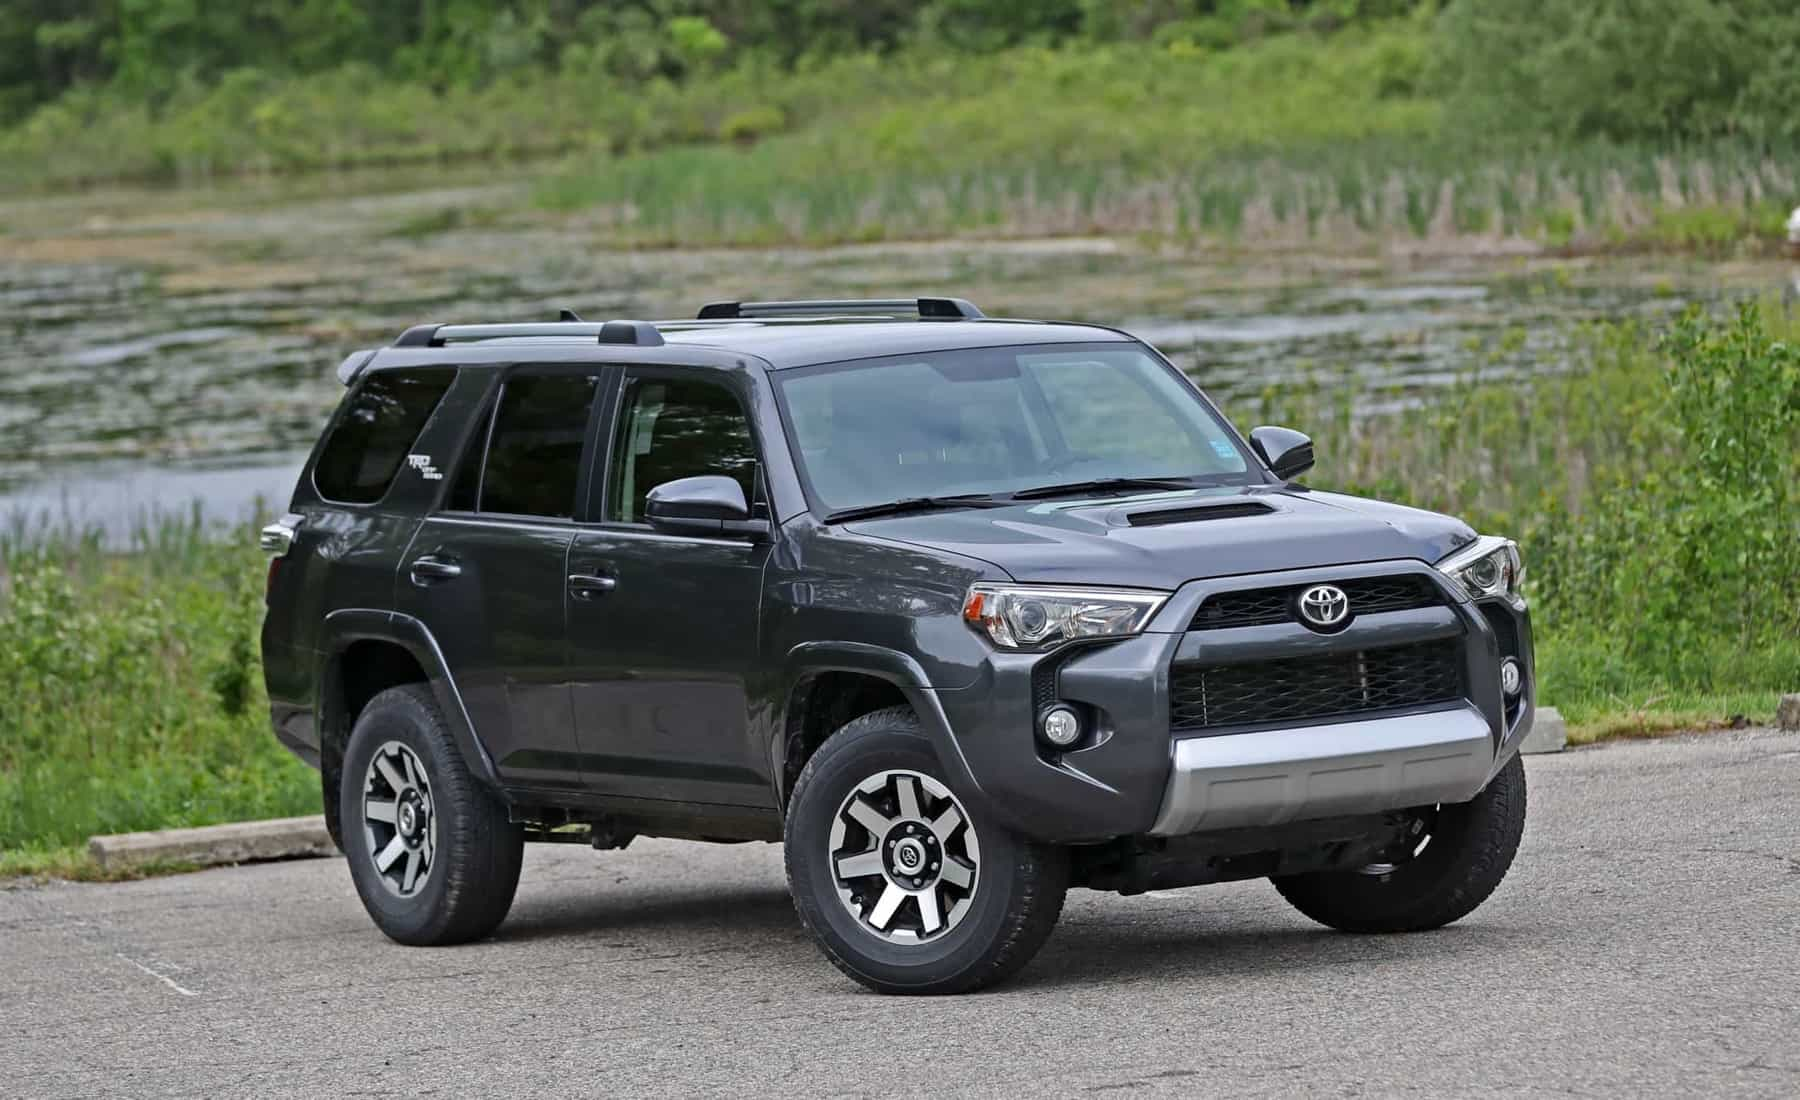 2017 Toyota 4Runner TRD Off Road 4WD Exterior View (Photo 23 of 40)